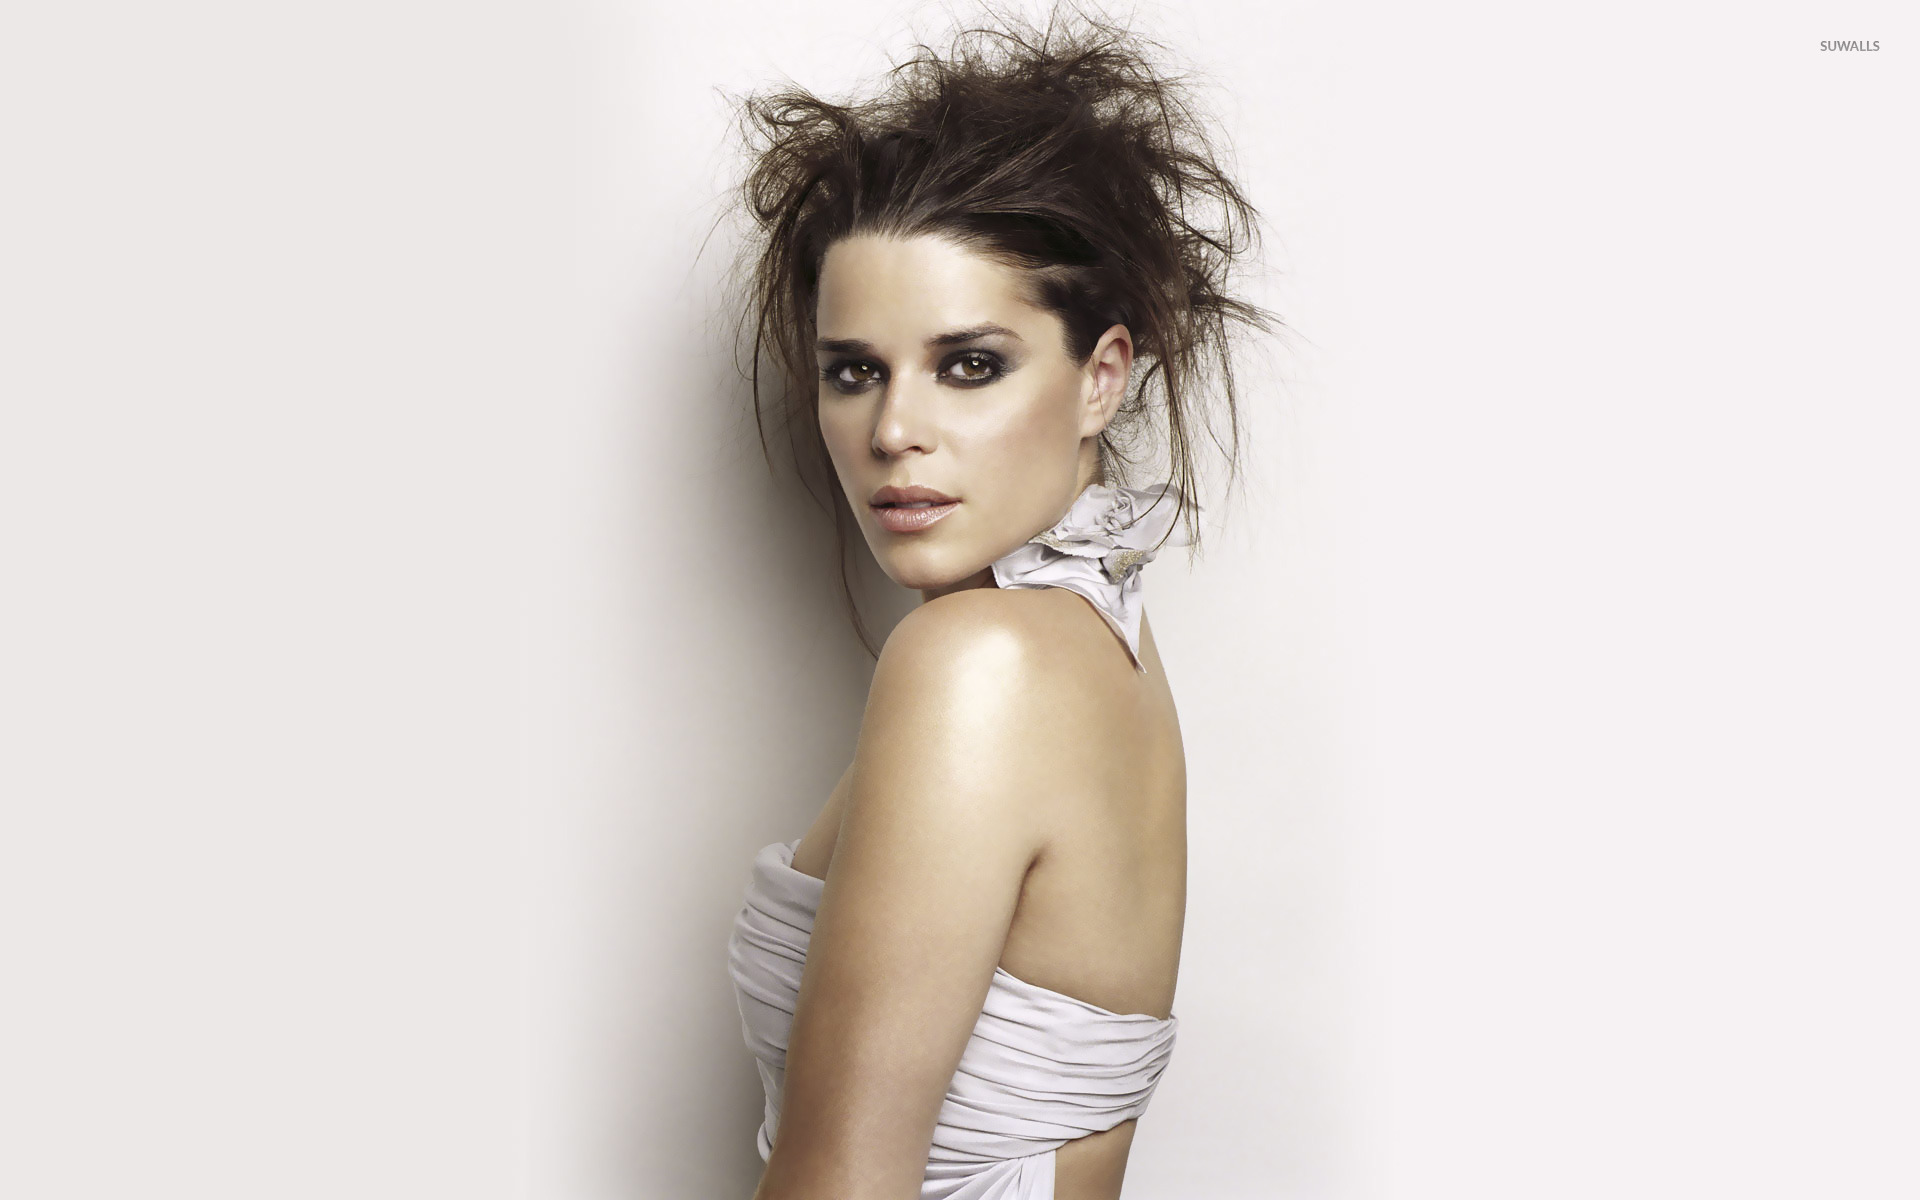 adrianne neve campbell wallpaper - photo #5